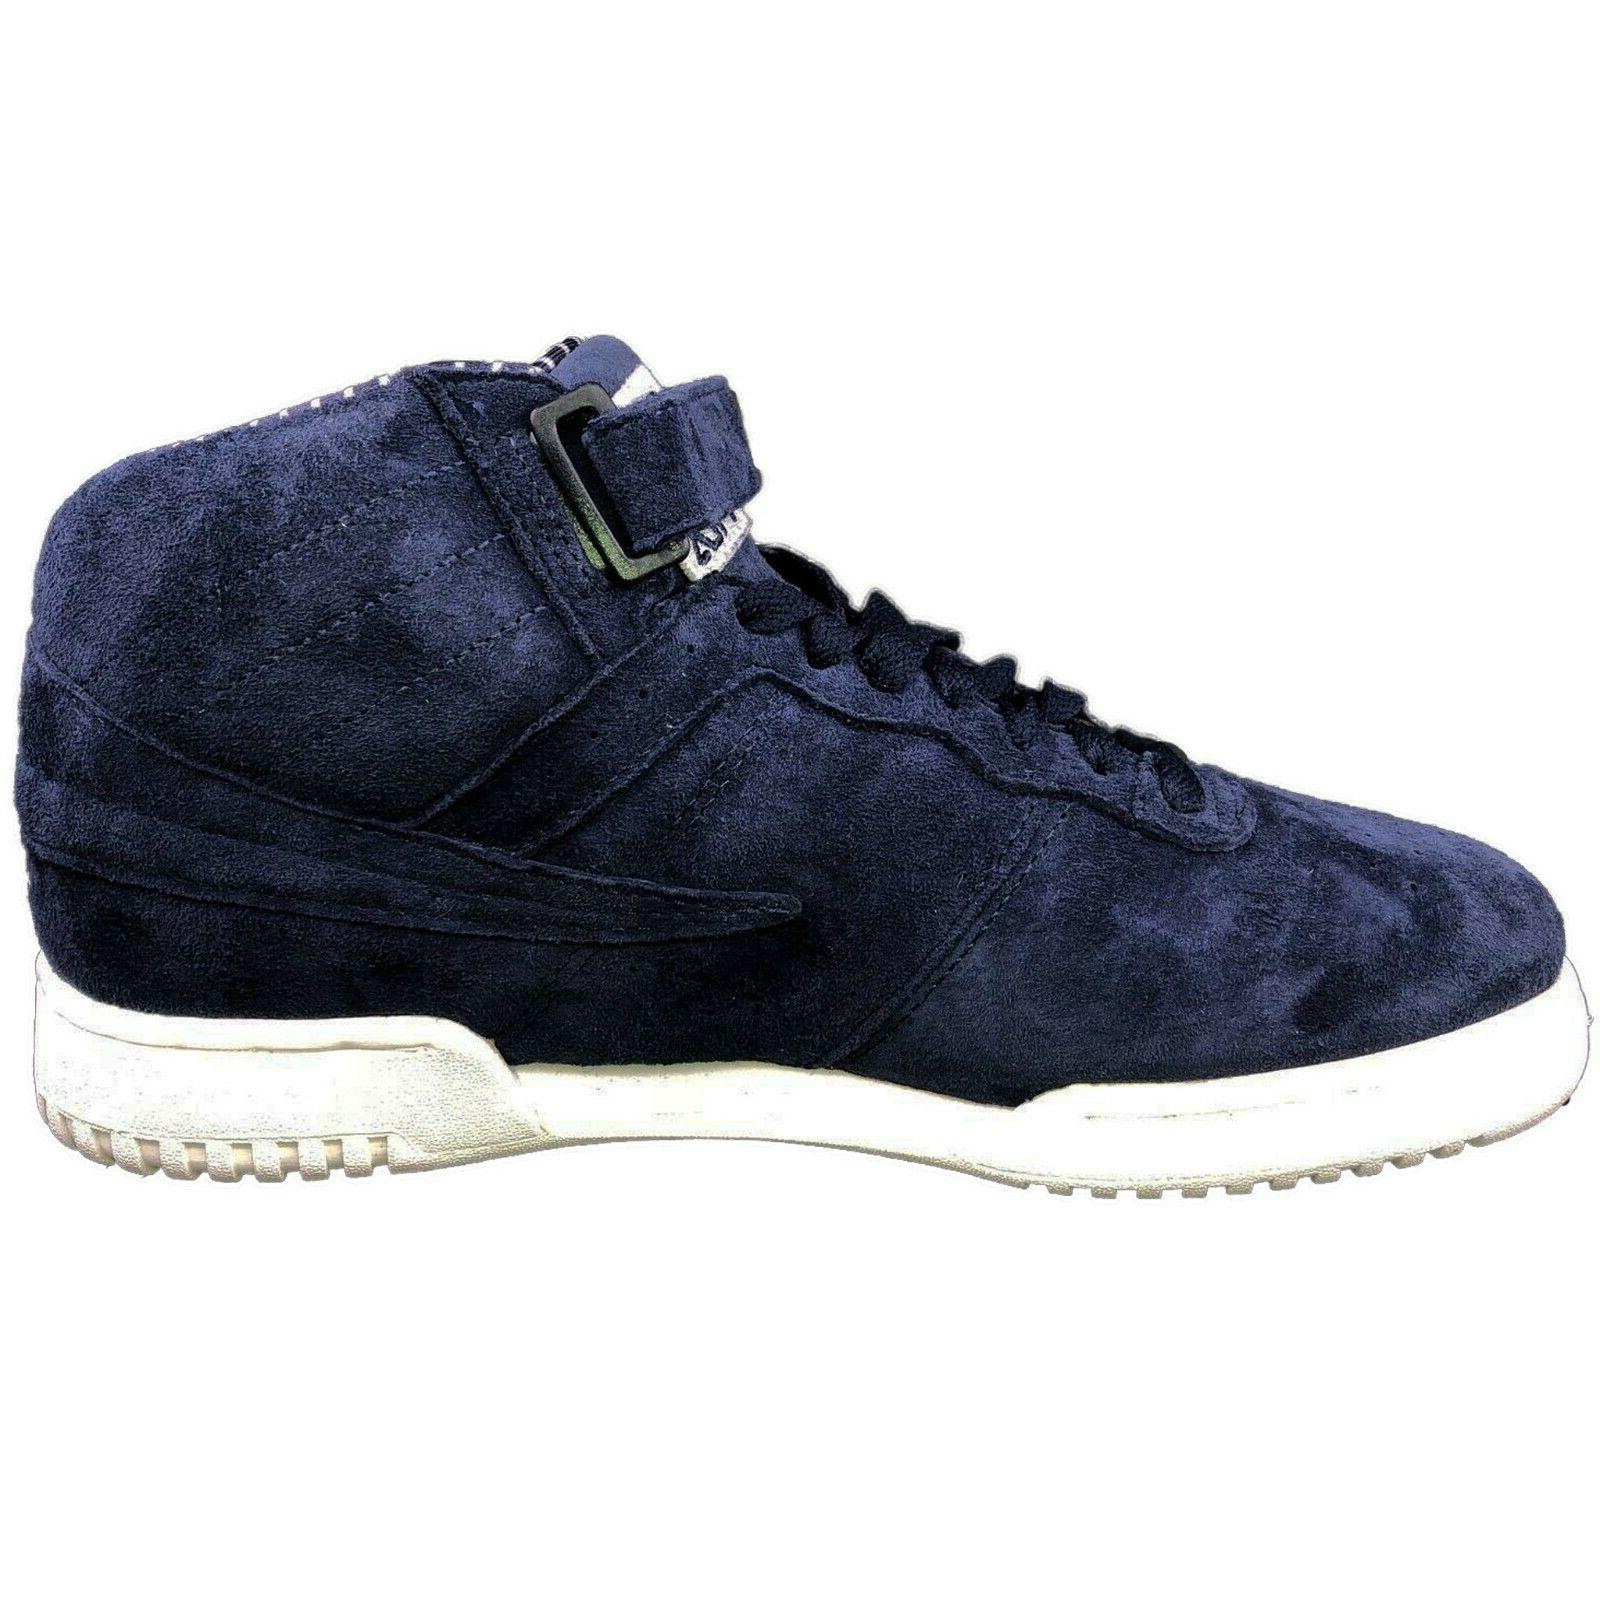 Fila Men's F13 F 13 Pinstripe High Mid Top Casual Basketball Shoes